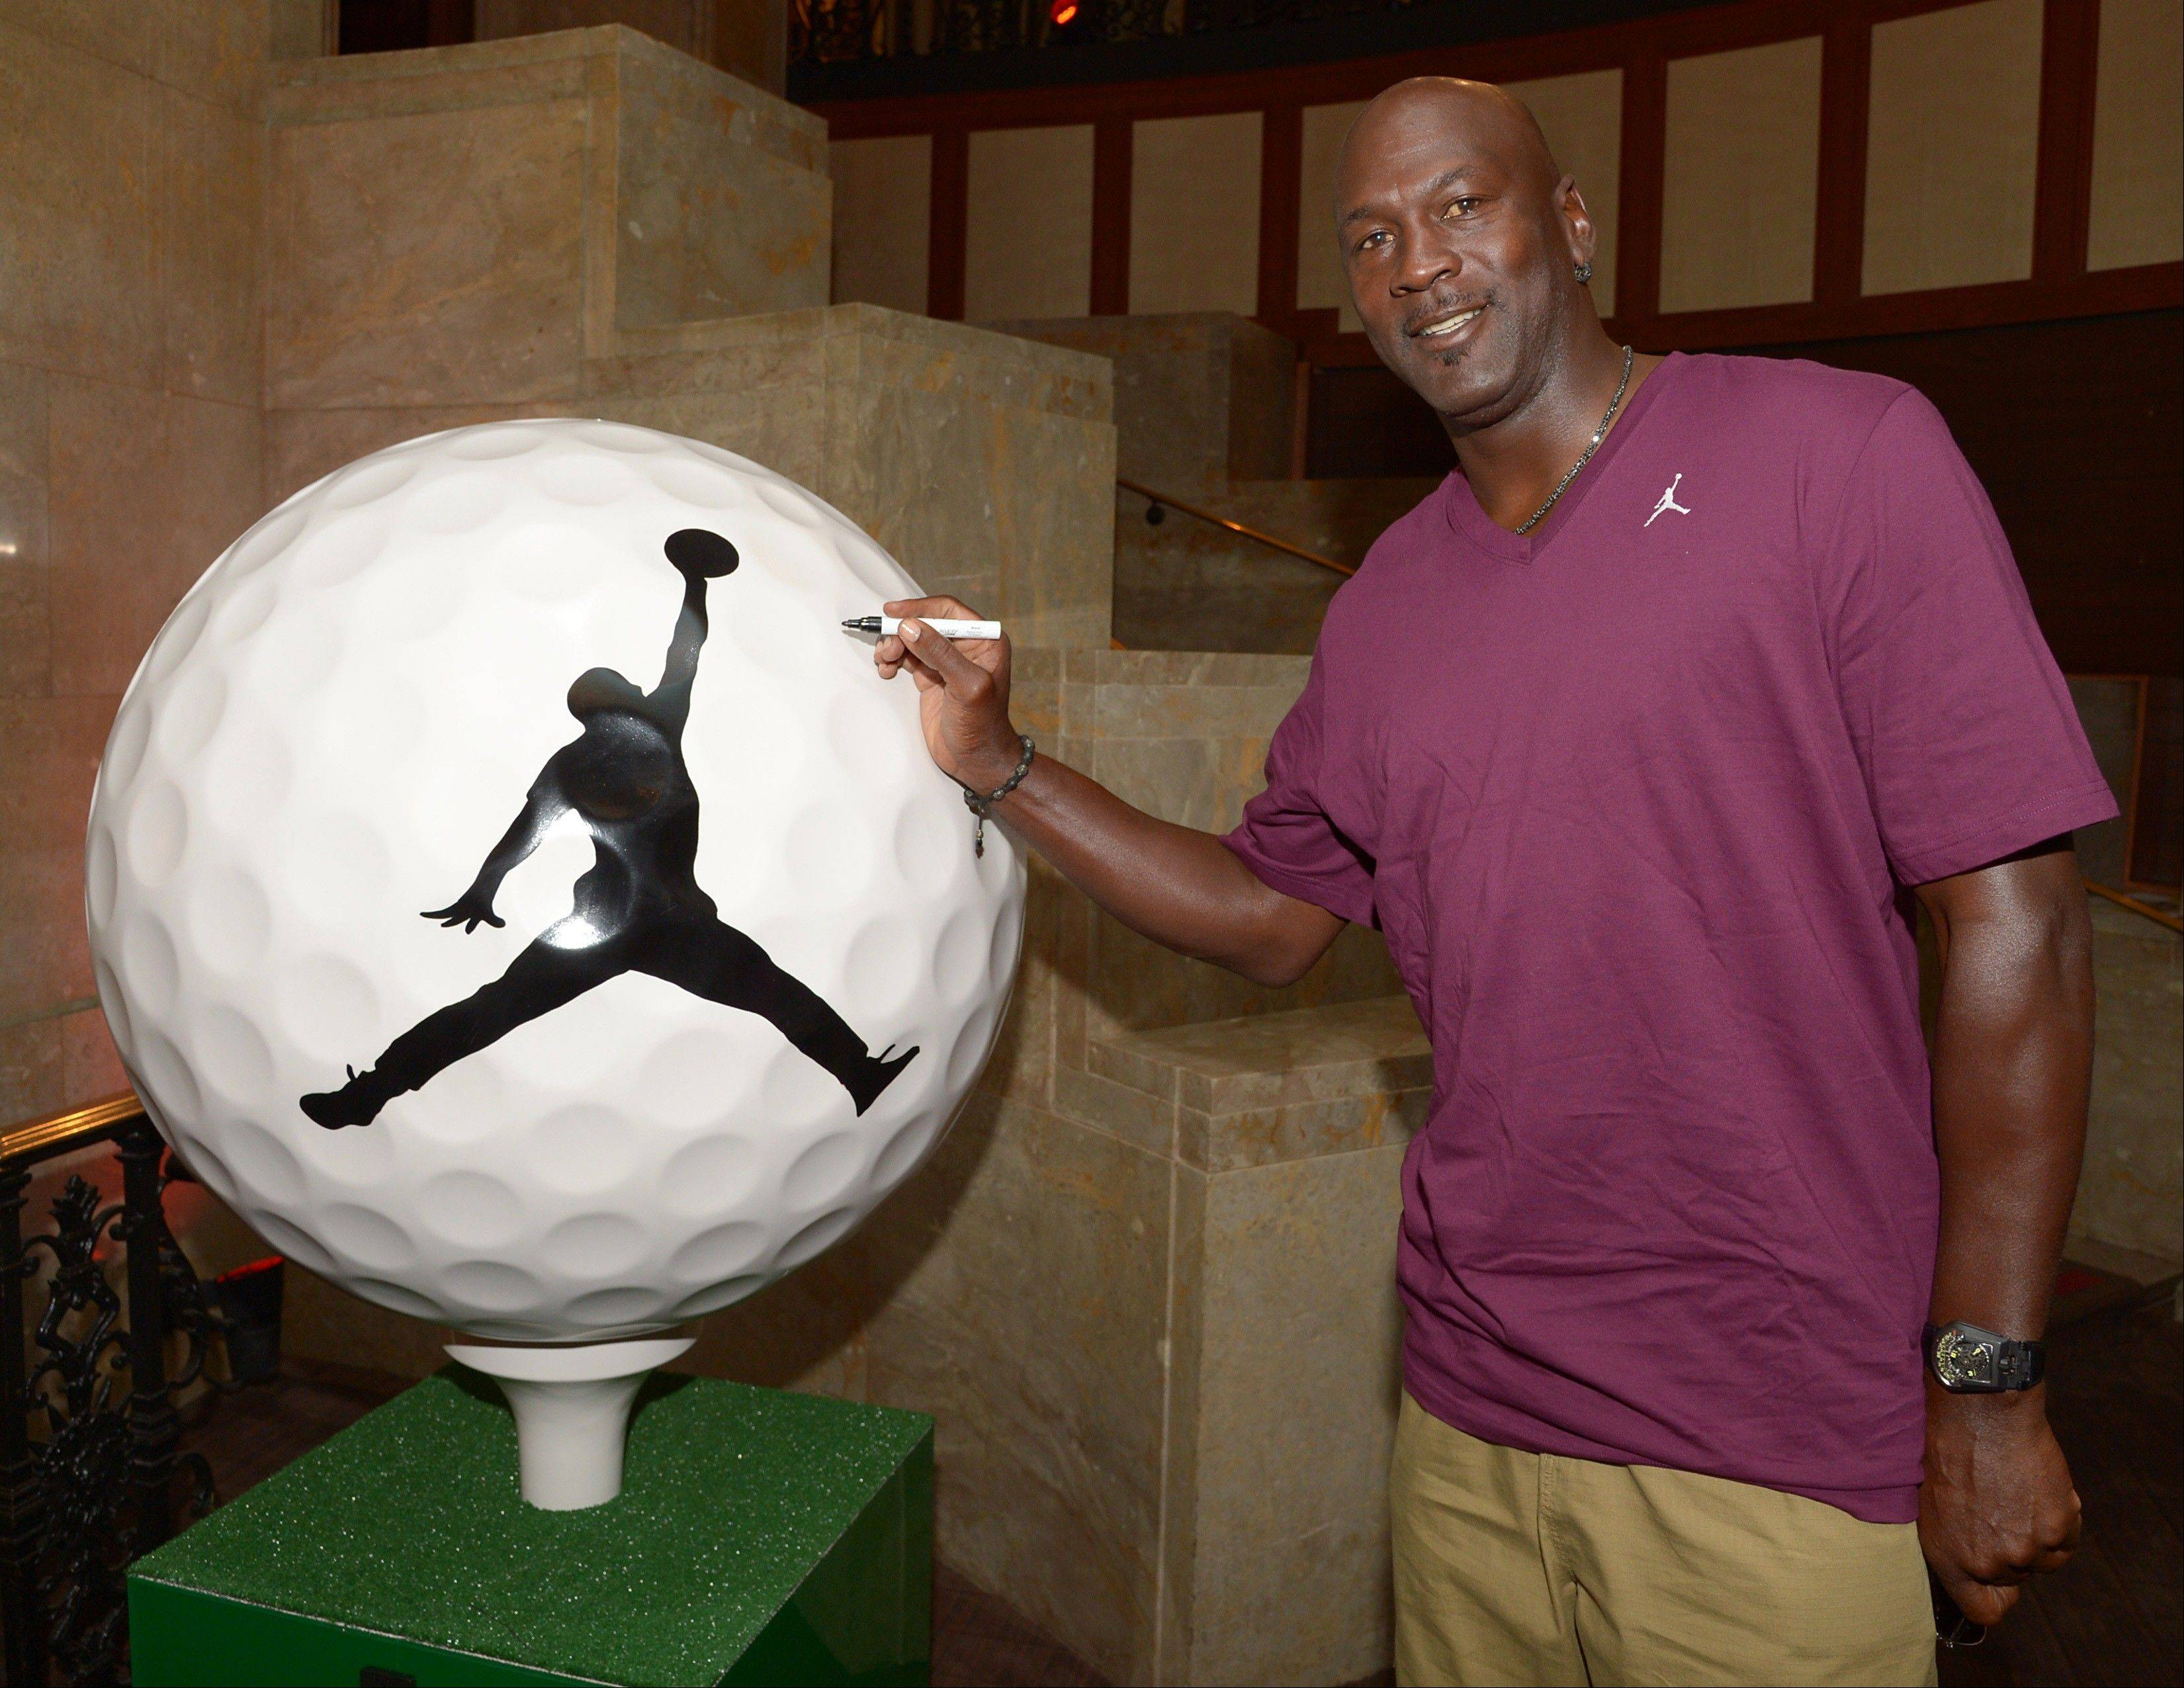 Michael Jordan signed his Ryder Cup Magnificant Moments golf ball at Michael Jordan's Steakhouse in Chicago this week. The ball will go on display with other celebrity-signed pieces that were decorated as part of a special fundraising campaign for local charities. The Ryder Cup balls will be showcases on the Magnificent Mile throughout September.